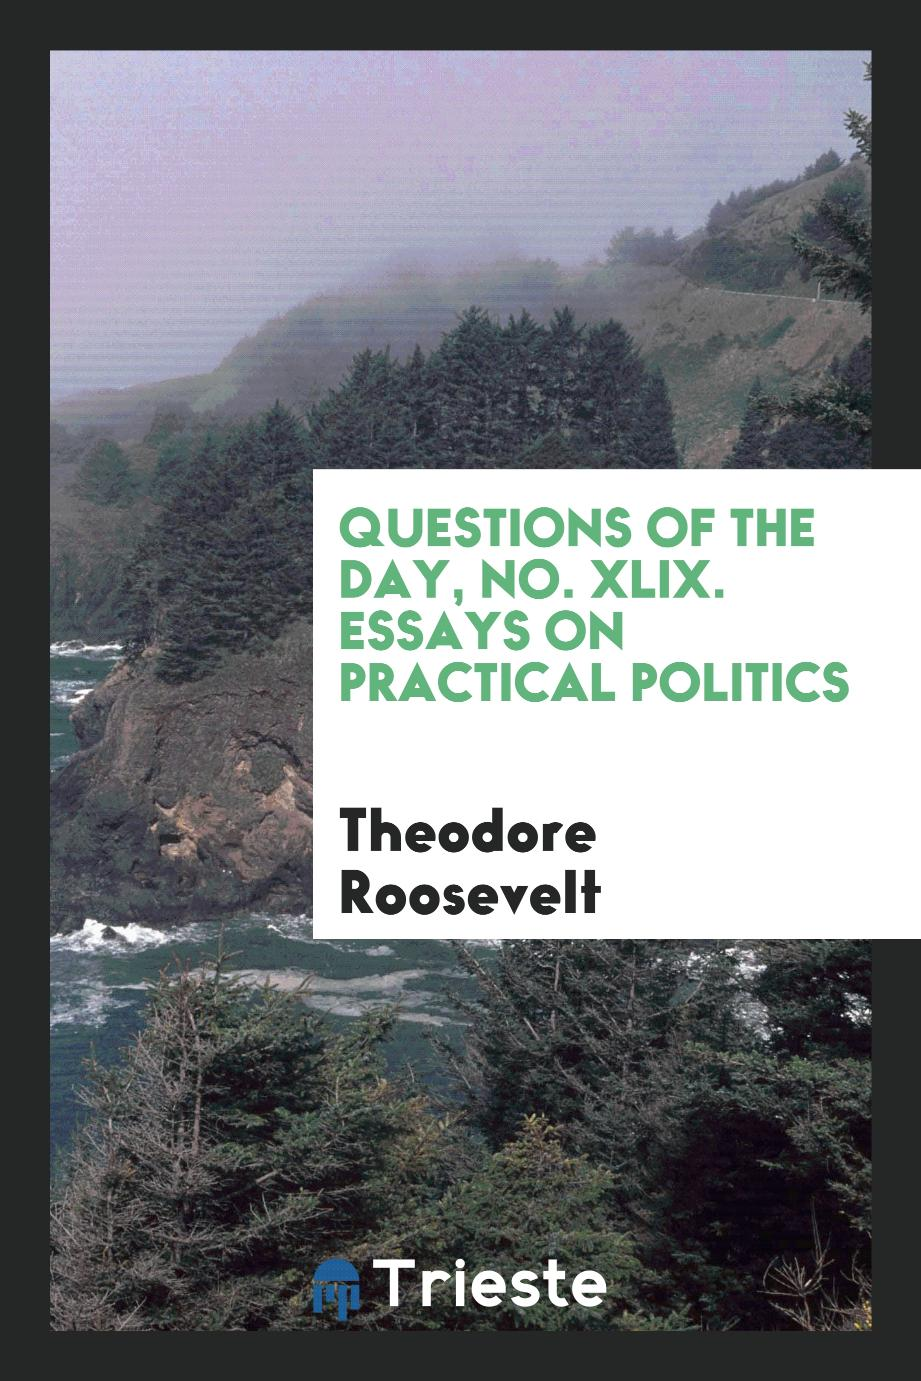 Questions of the day, No. XLIX. Essays on Practical Politics